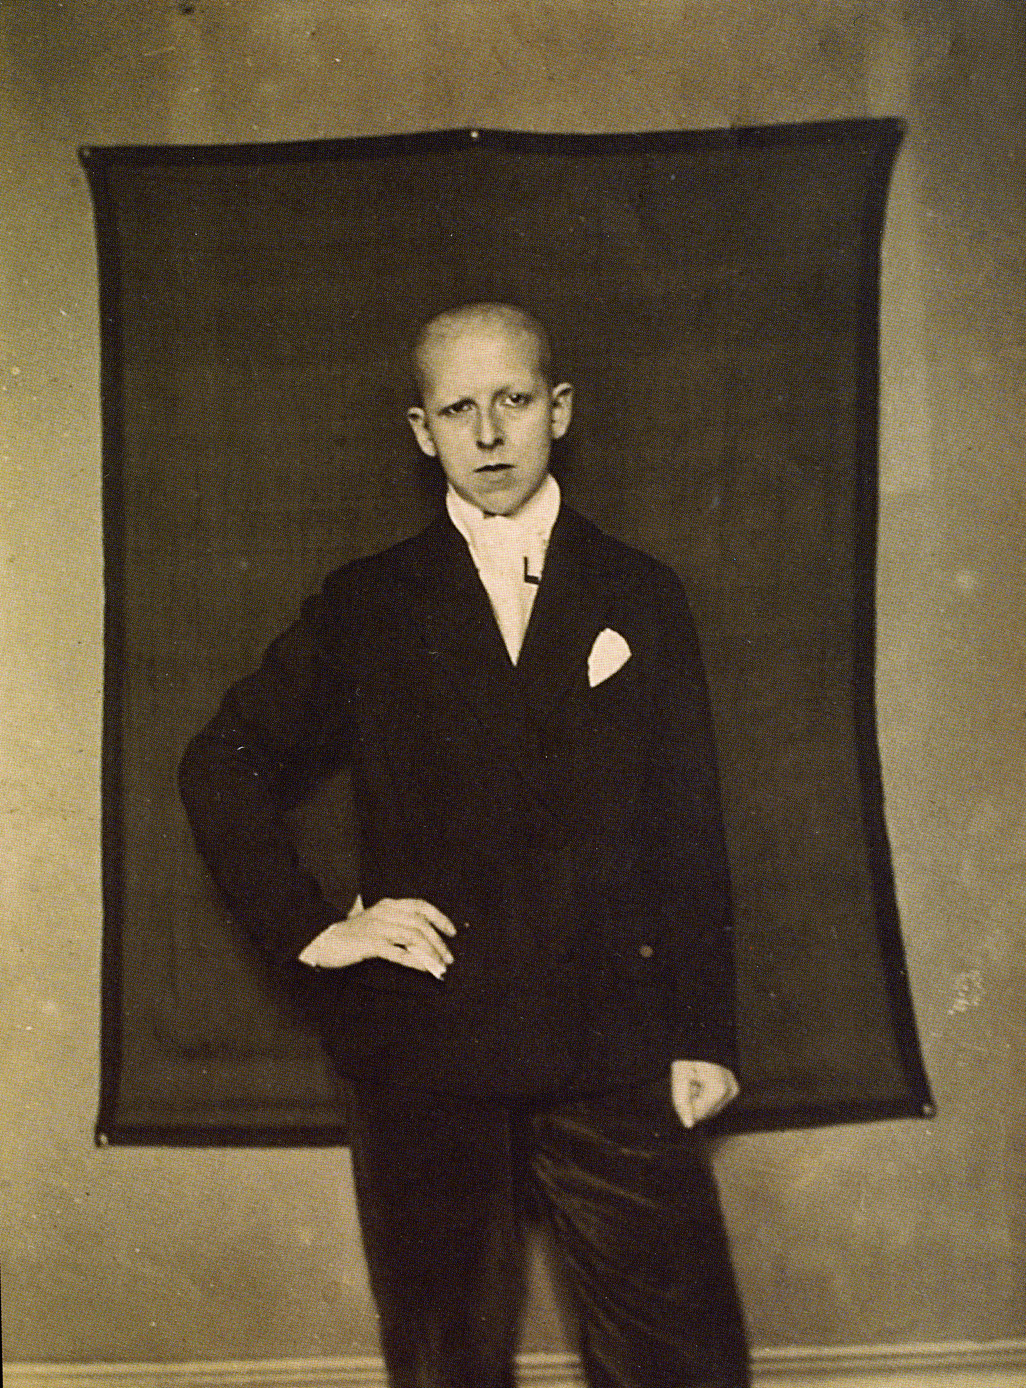 self portrait photographer claude cahun